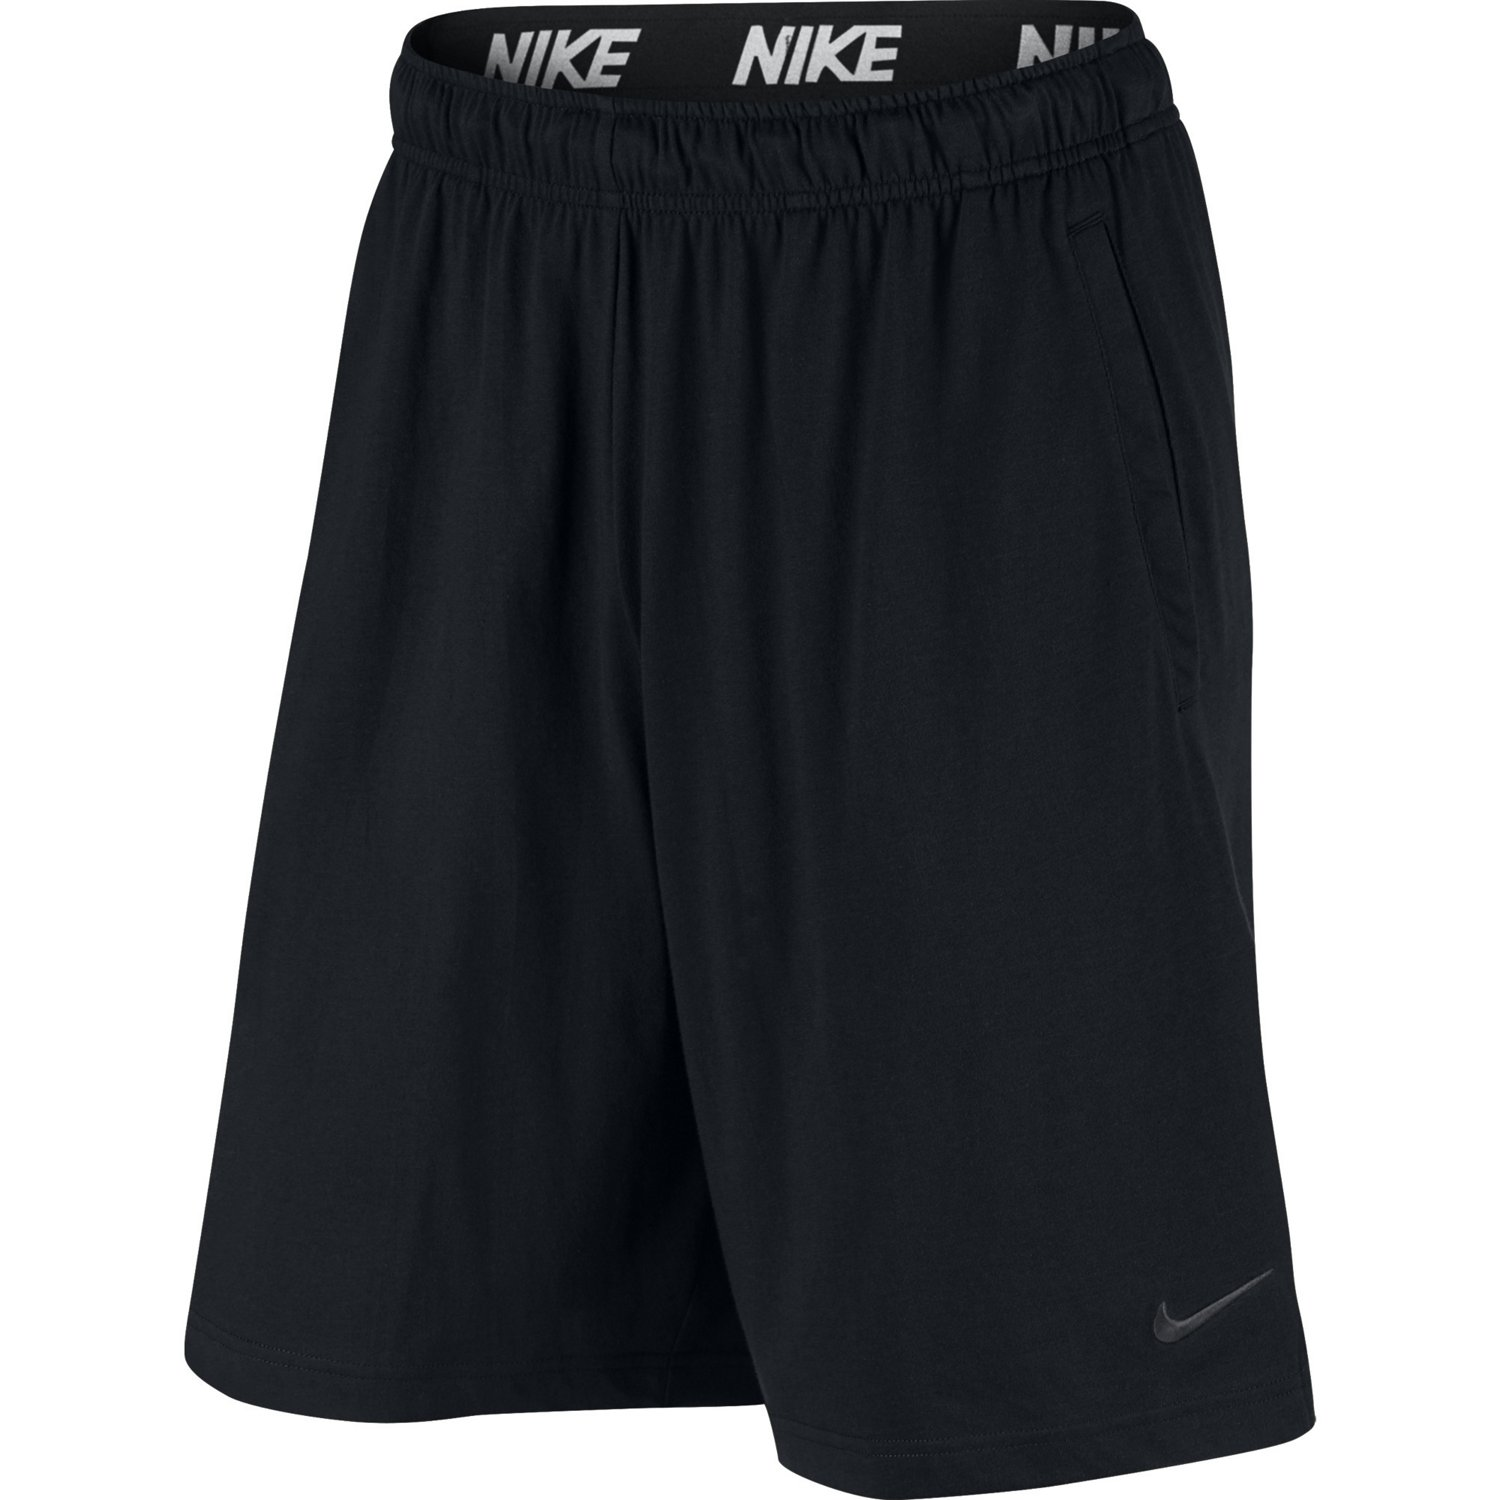 21036346c2e Display product reviews for Nike Men's Training Short